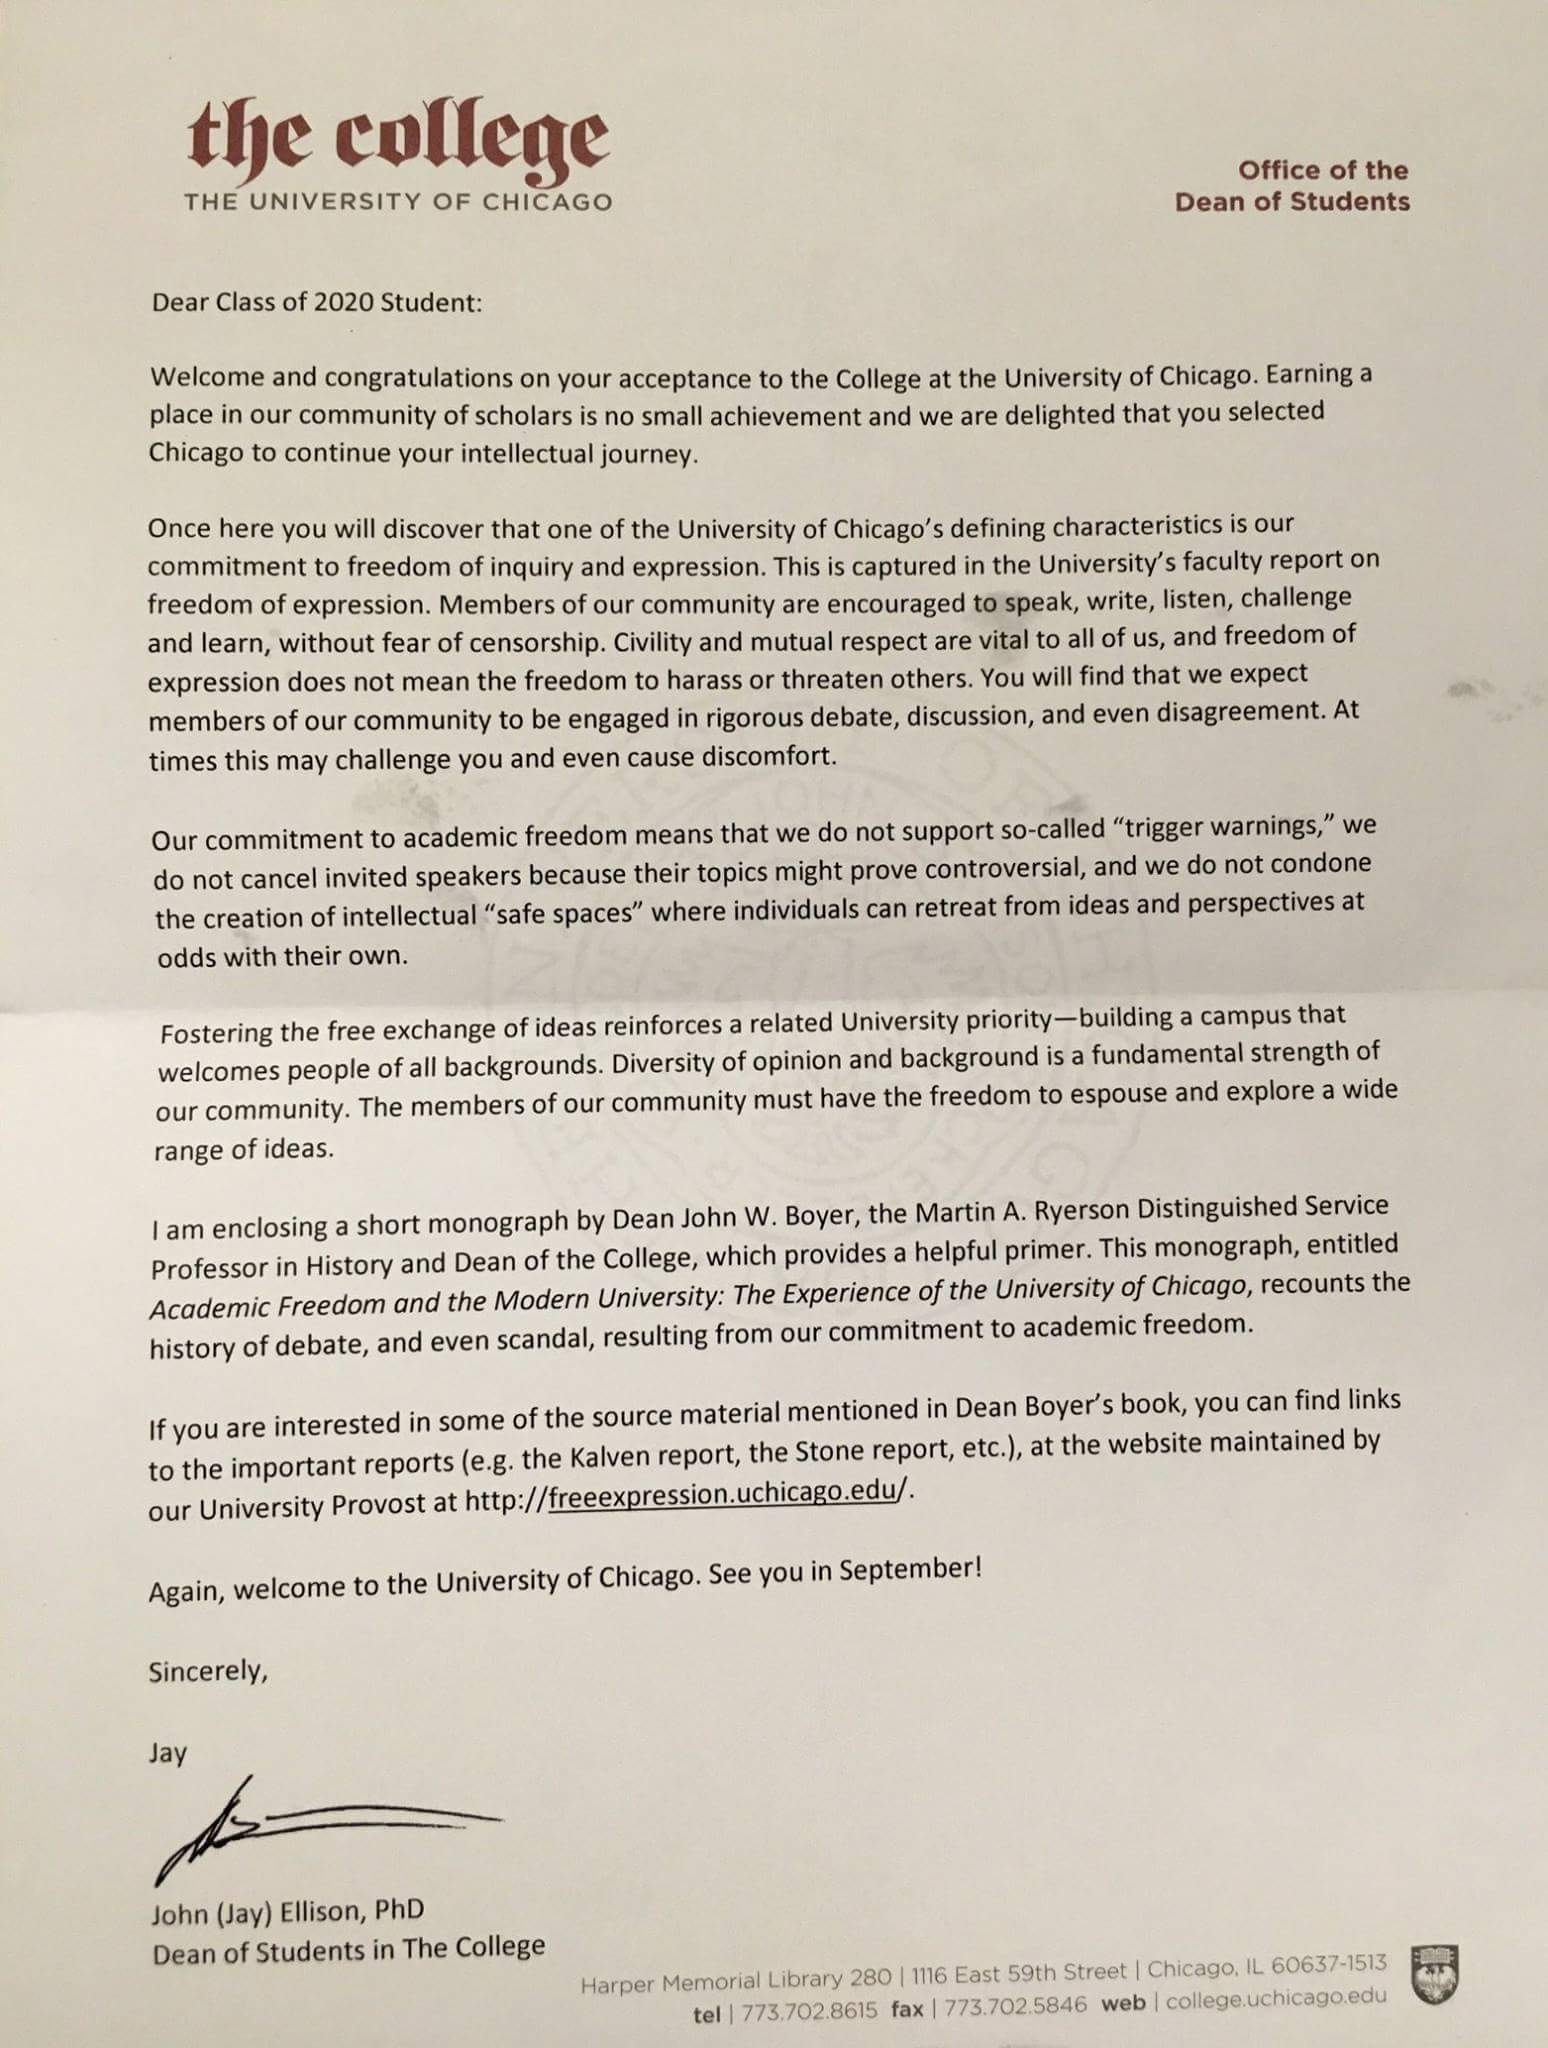 u of chicago warns incoming students not to expect safe spaces or here is the chicago letter